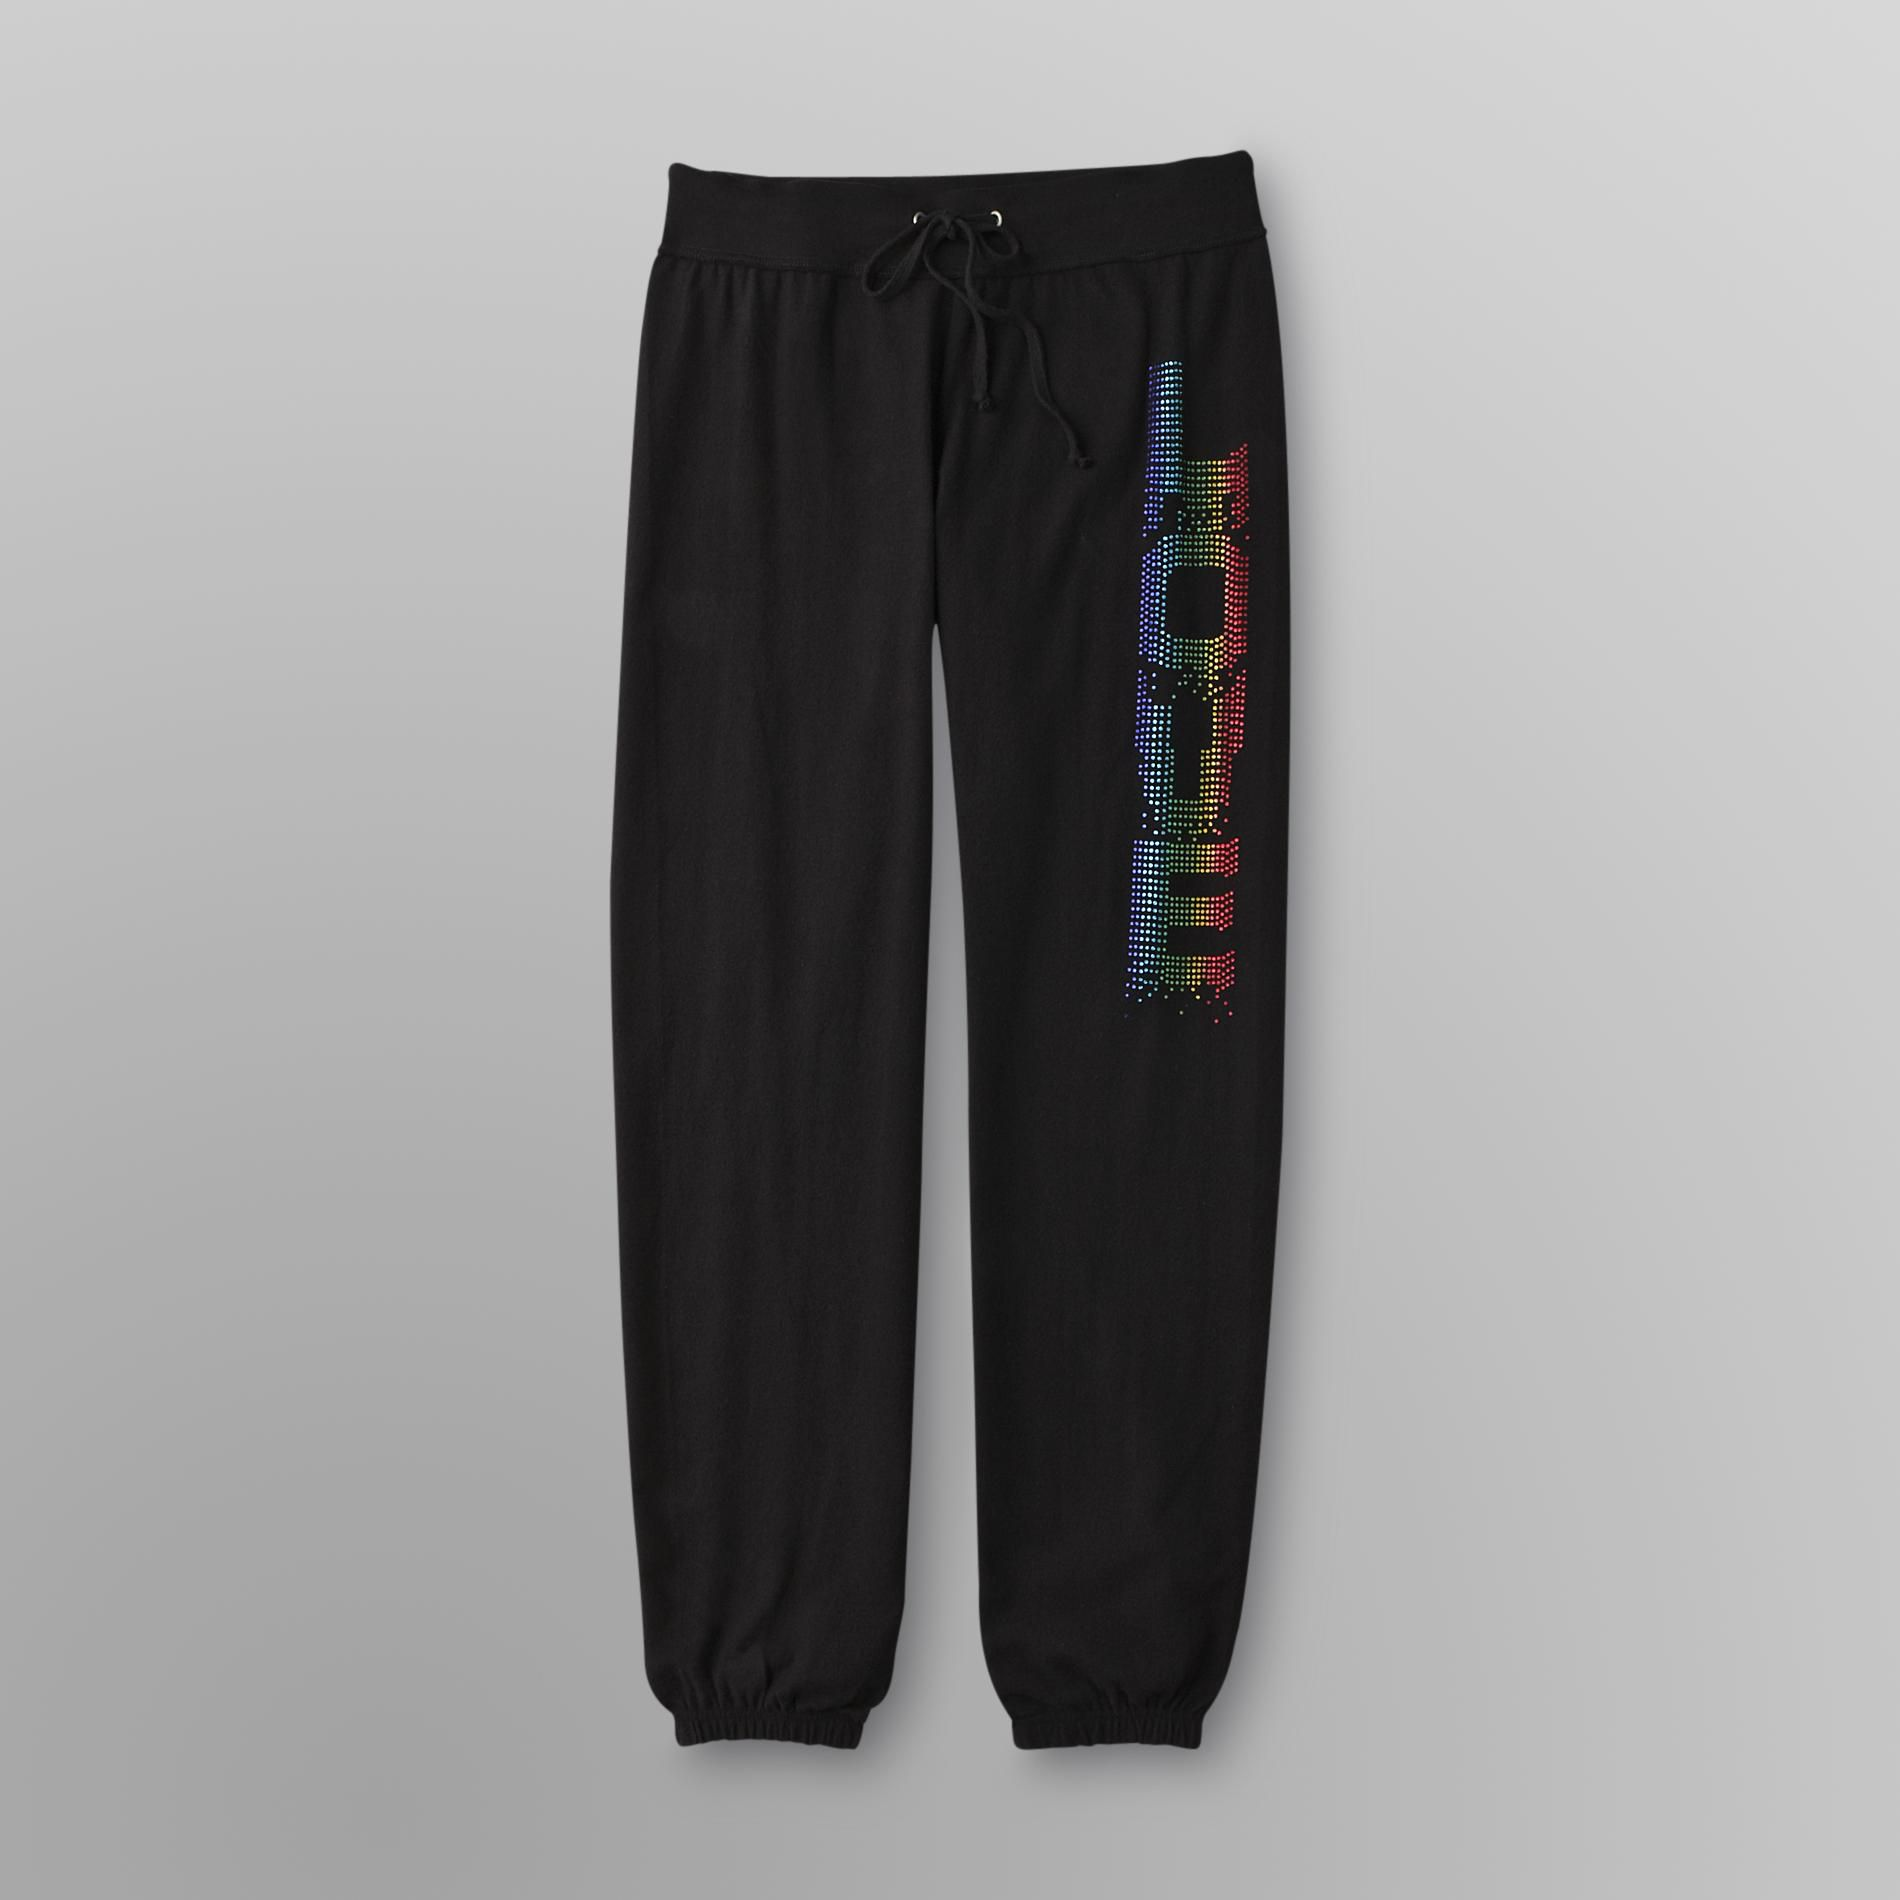 Joe by Joe Boxer Women's Sweatpants - Love at Sears.com